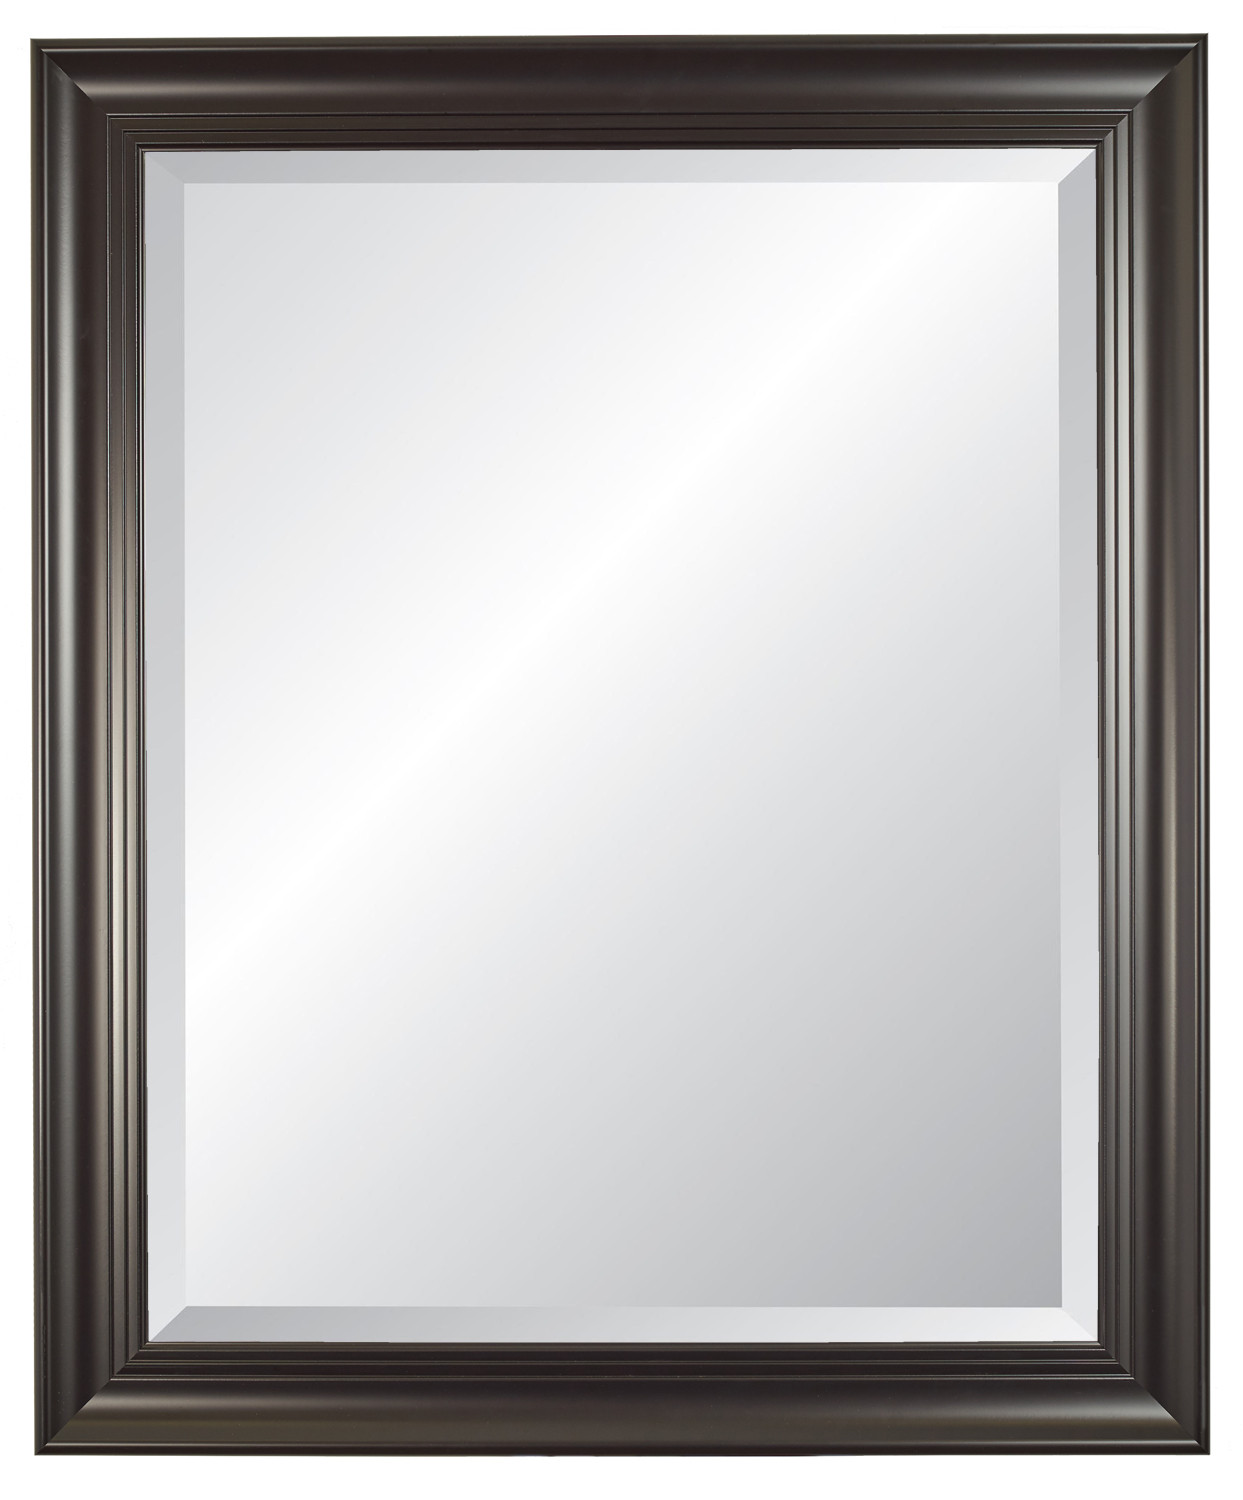 Carriage House Black Beveled Wall Mirror by Alpine Art & Mirror